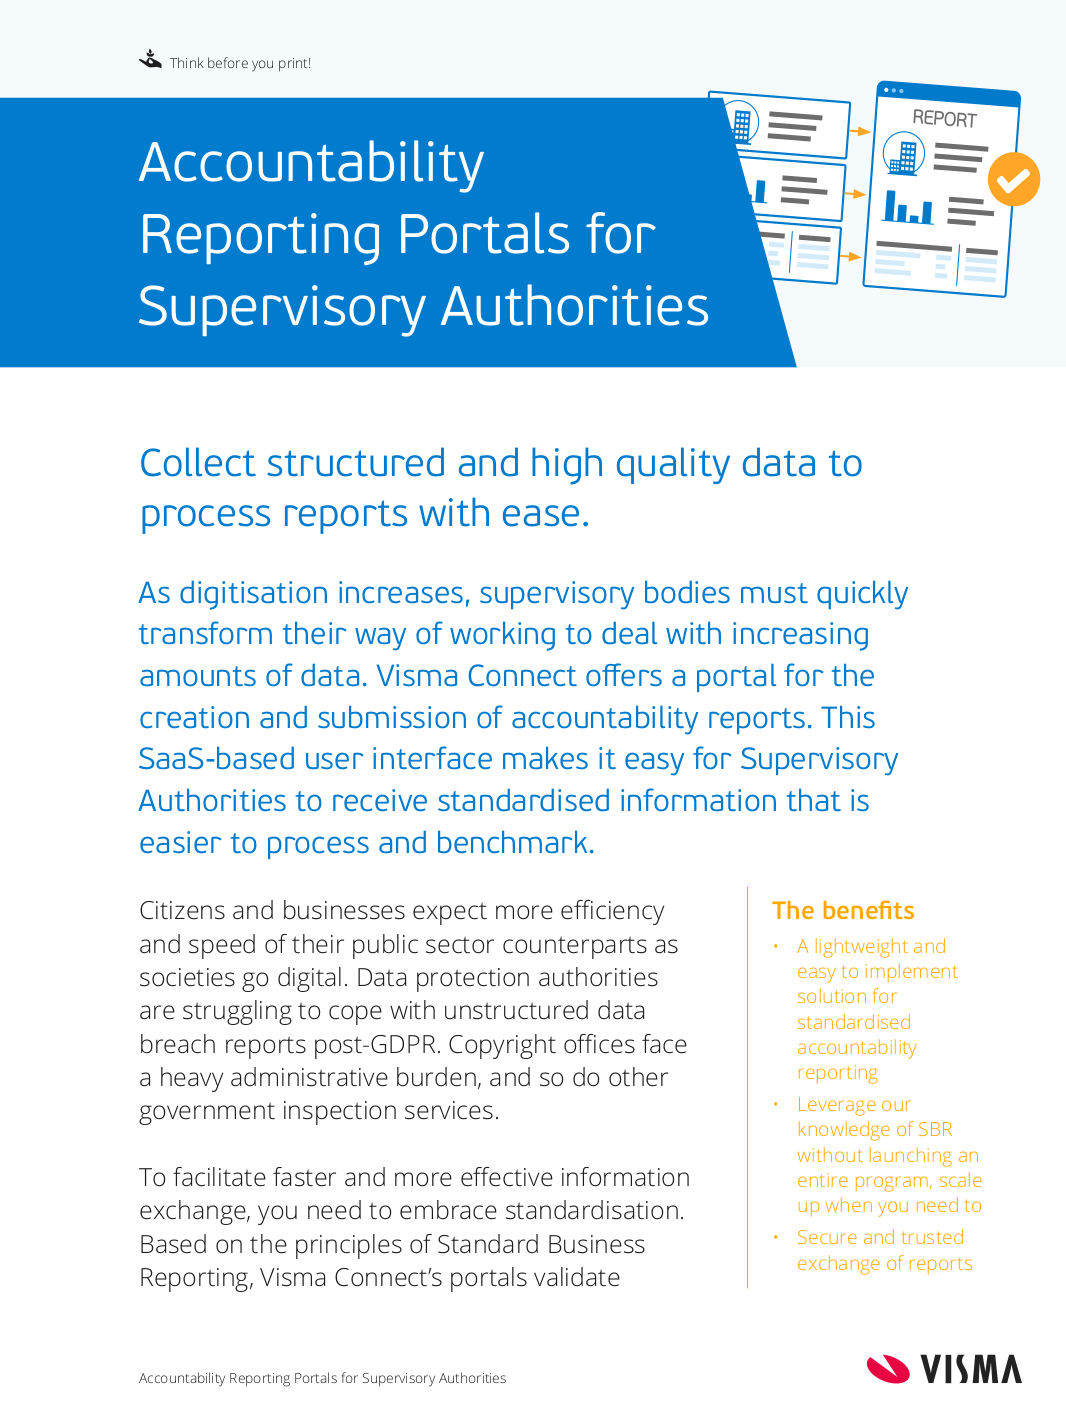 Frontpage SBR and Portals for Supervisory Authorities-1